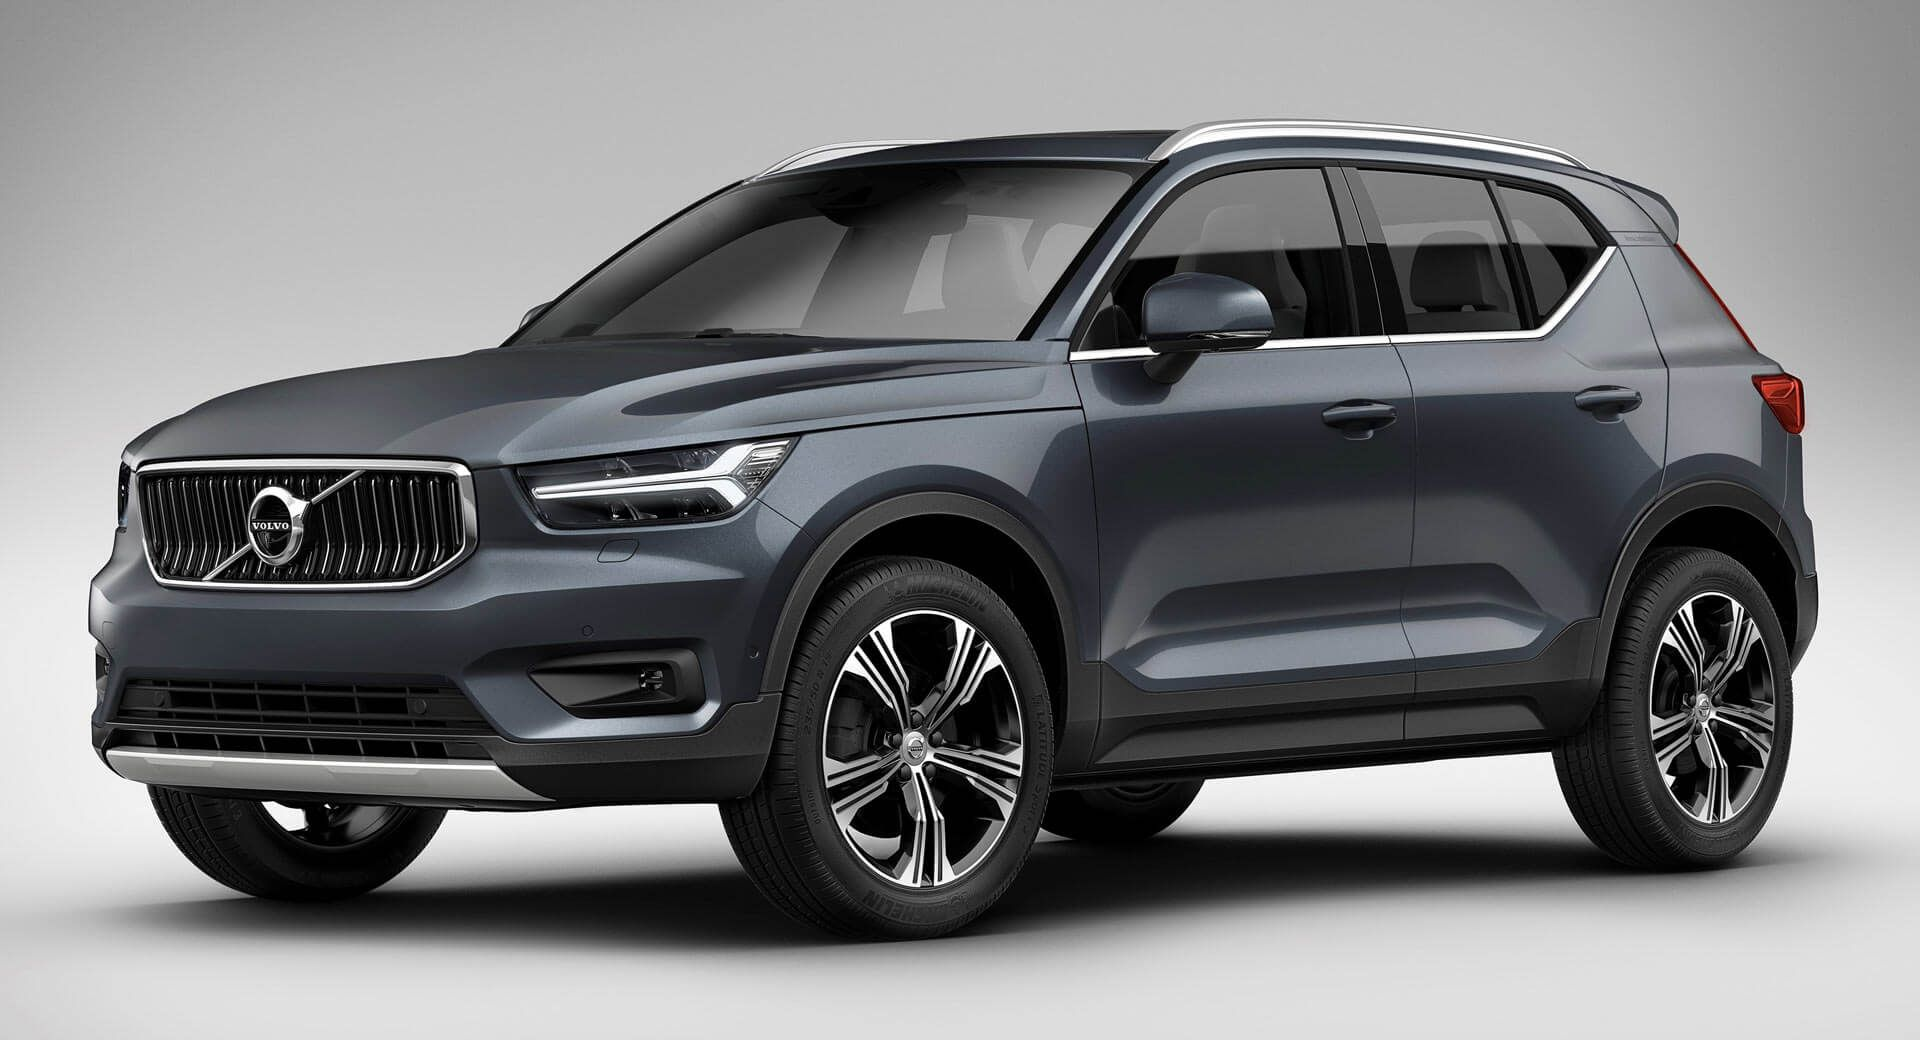 Xc40 Debuts Volvo S First Ever Three Cylinder Engine Hybridized And Ev Models To Follow Carscoops Volvo Volvo Suv Volvo Cars